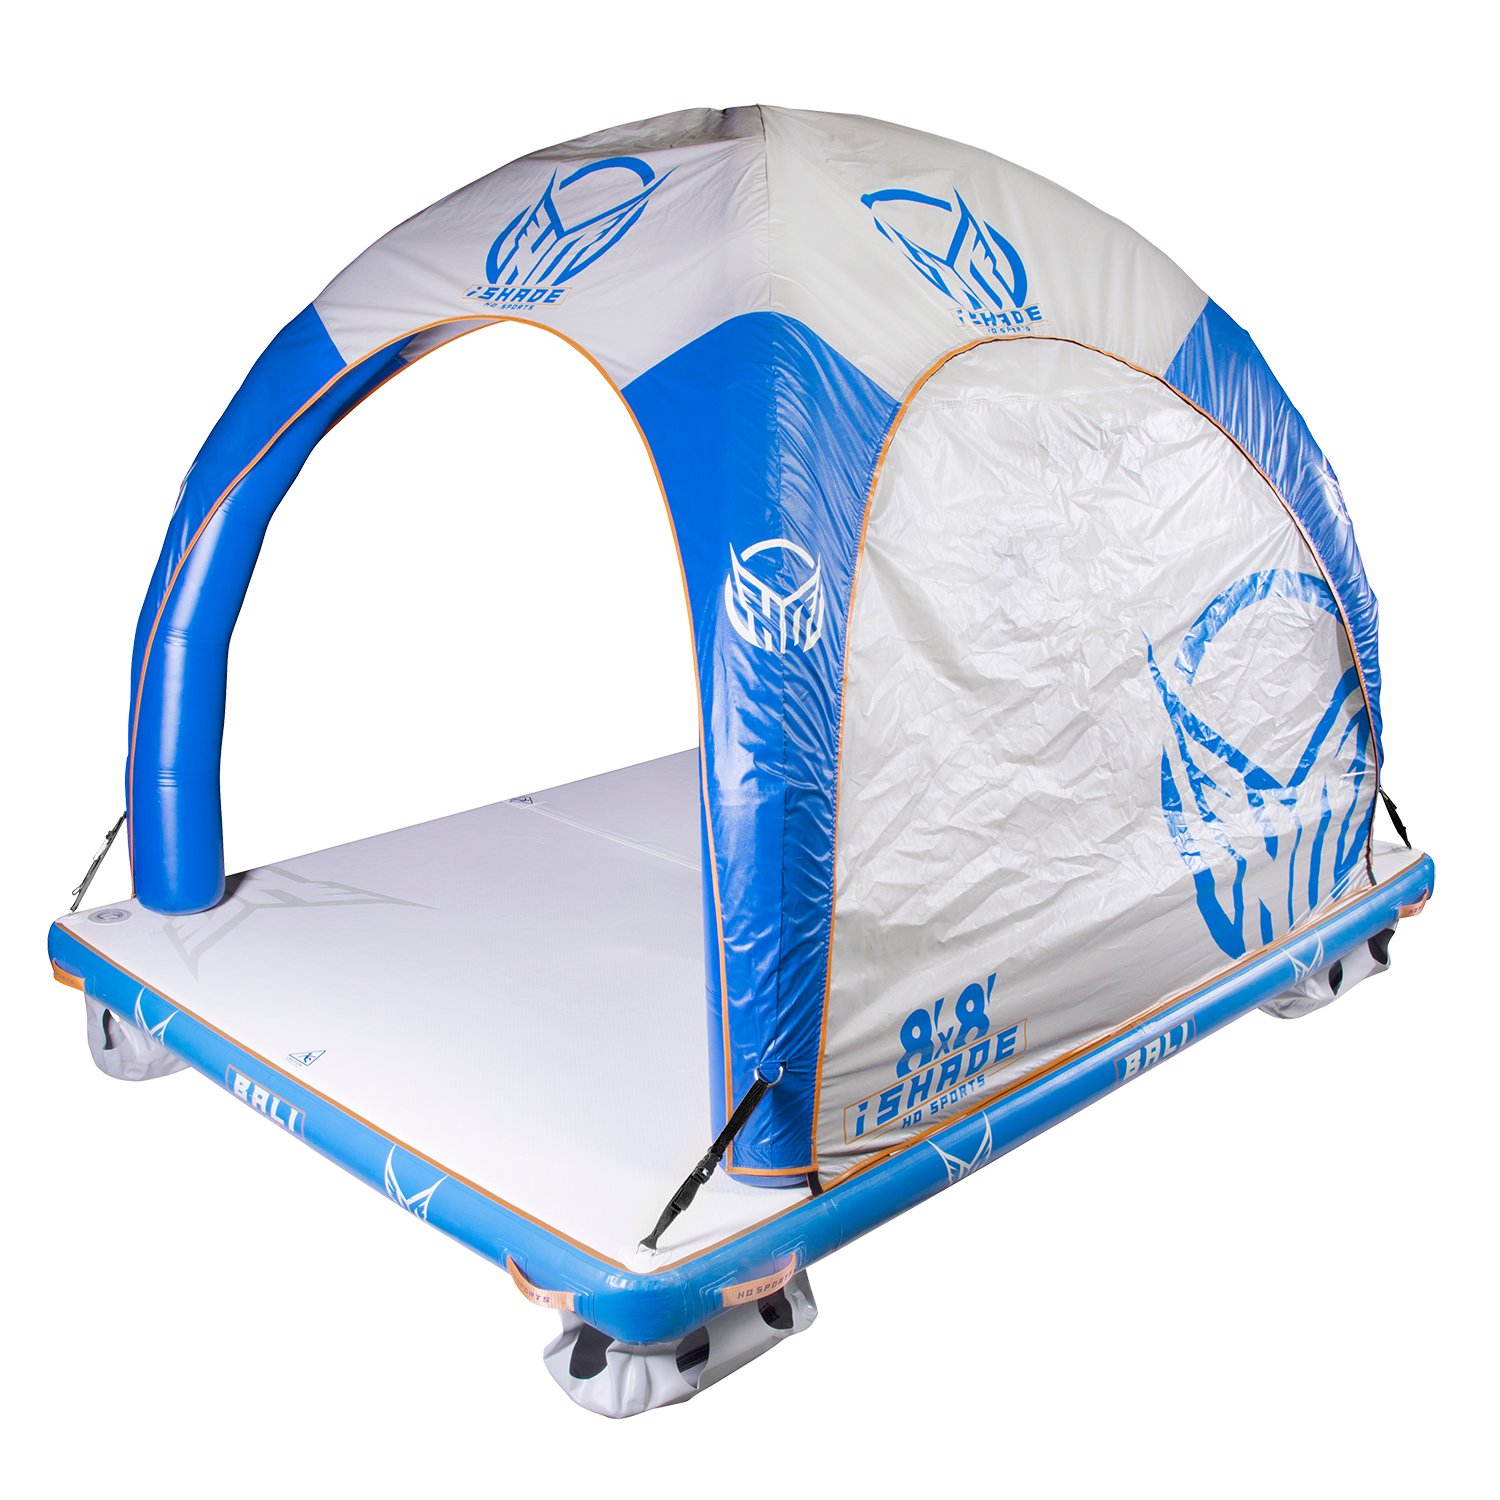 ishade water tent for inflatable water mats at 88 Gear